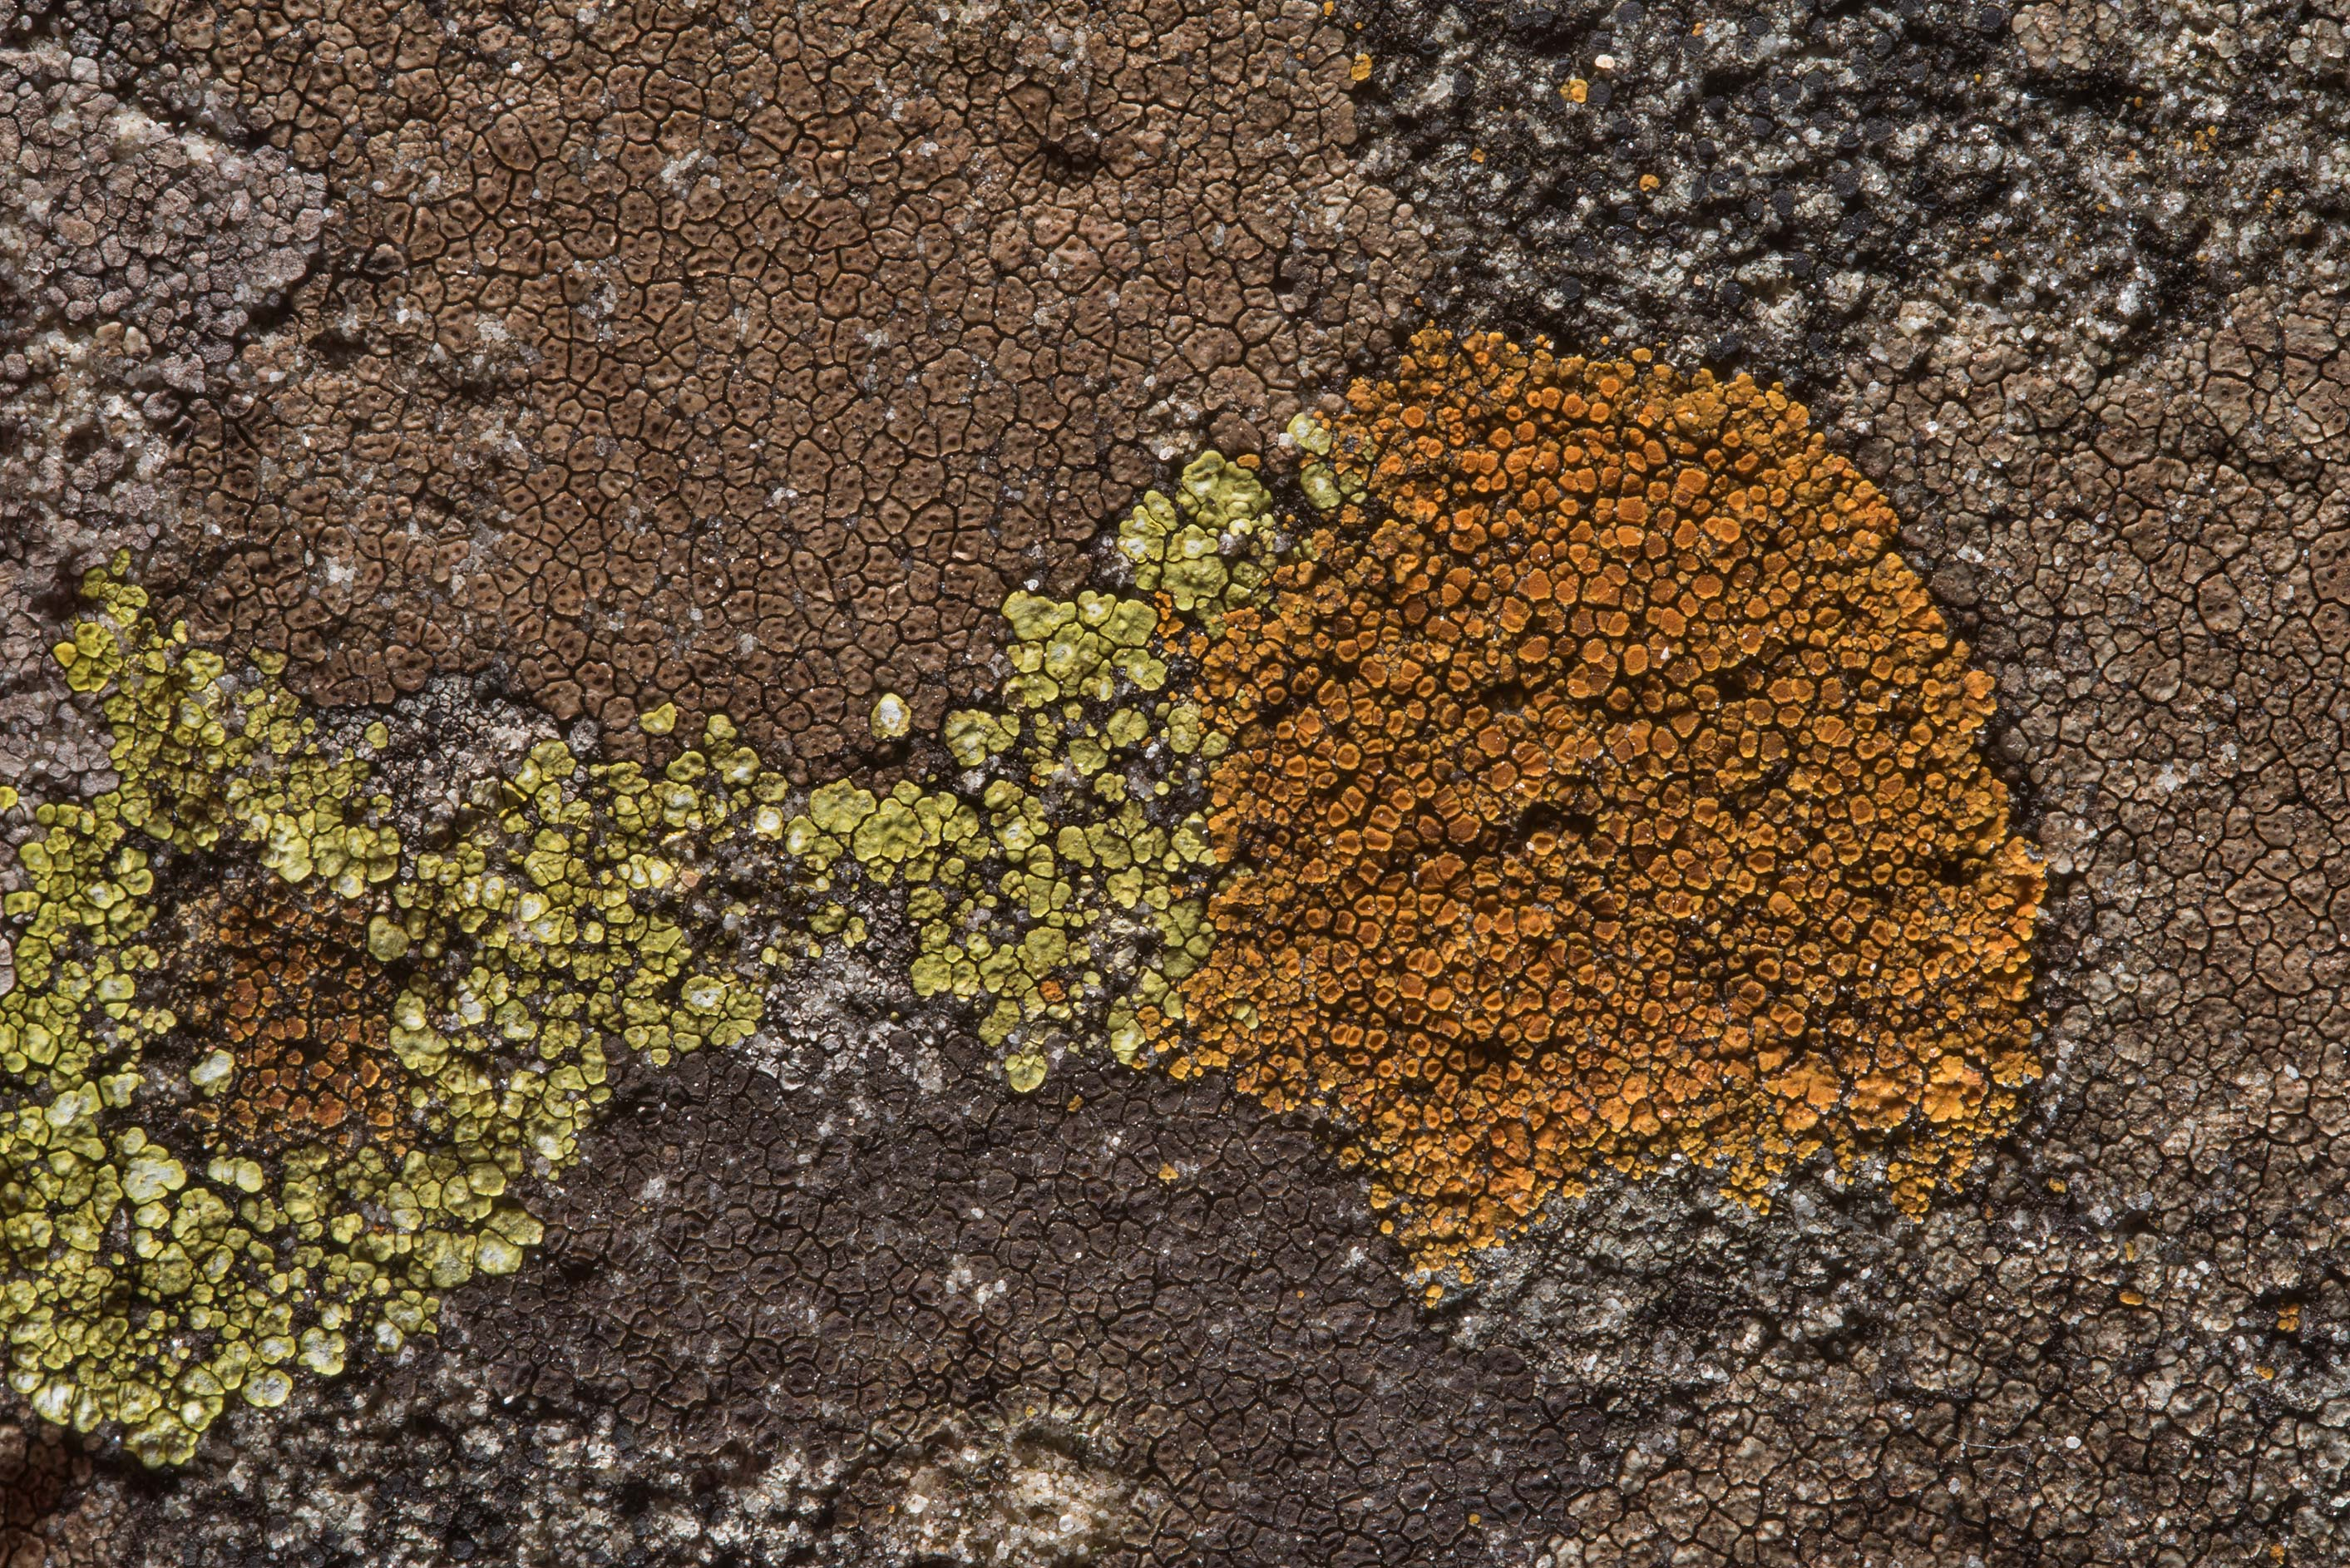 Firedot lichen Caloplaca crenulatella (orange...Pen Creek Park. College Station, Texas